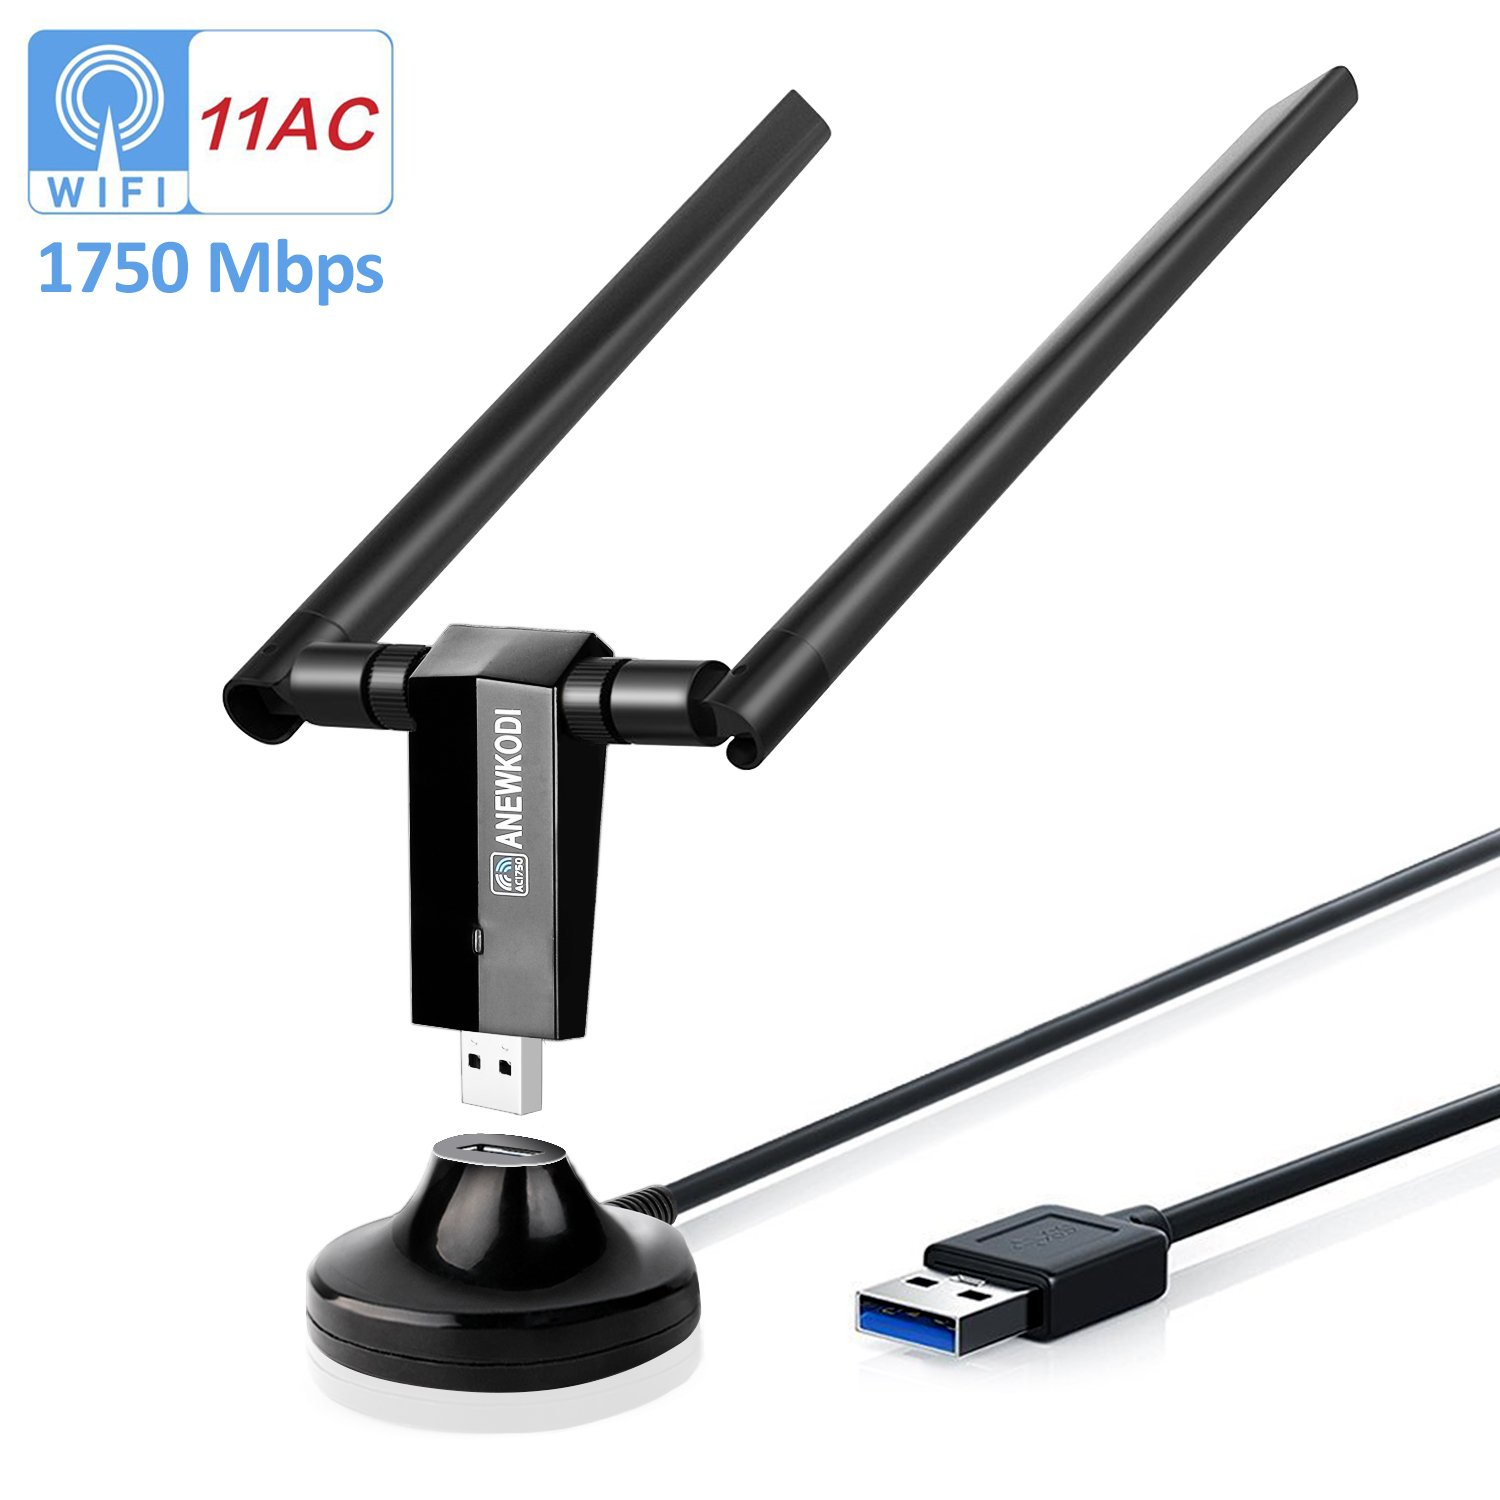 ANEWKODI AC1750Mbps USB WiFi Adapter USB 3.0 Double 5dBi Antenna USB Wireless Adapter Dual Band 2.4GHz/5.8GHz 1300Mbps 802.11ac/b/g/n Wireless Adapter for Desktop/Laptop/PC